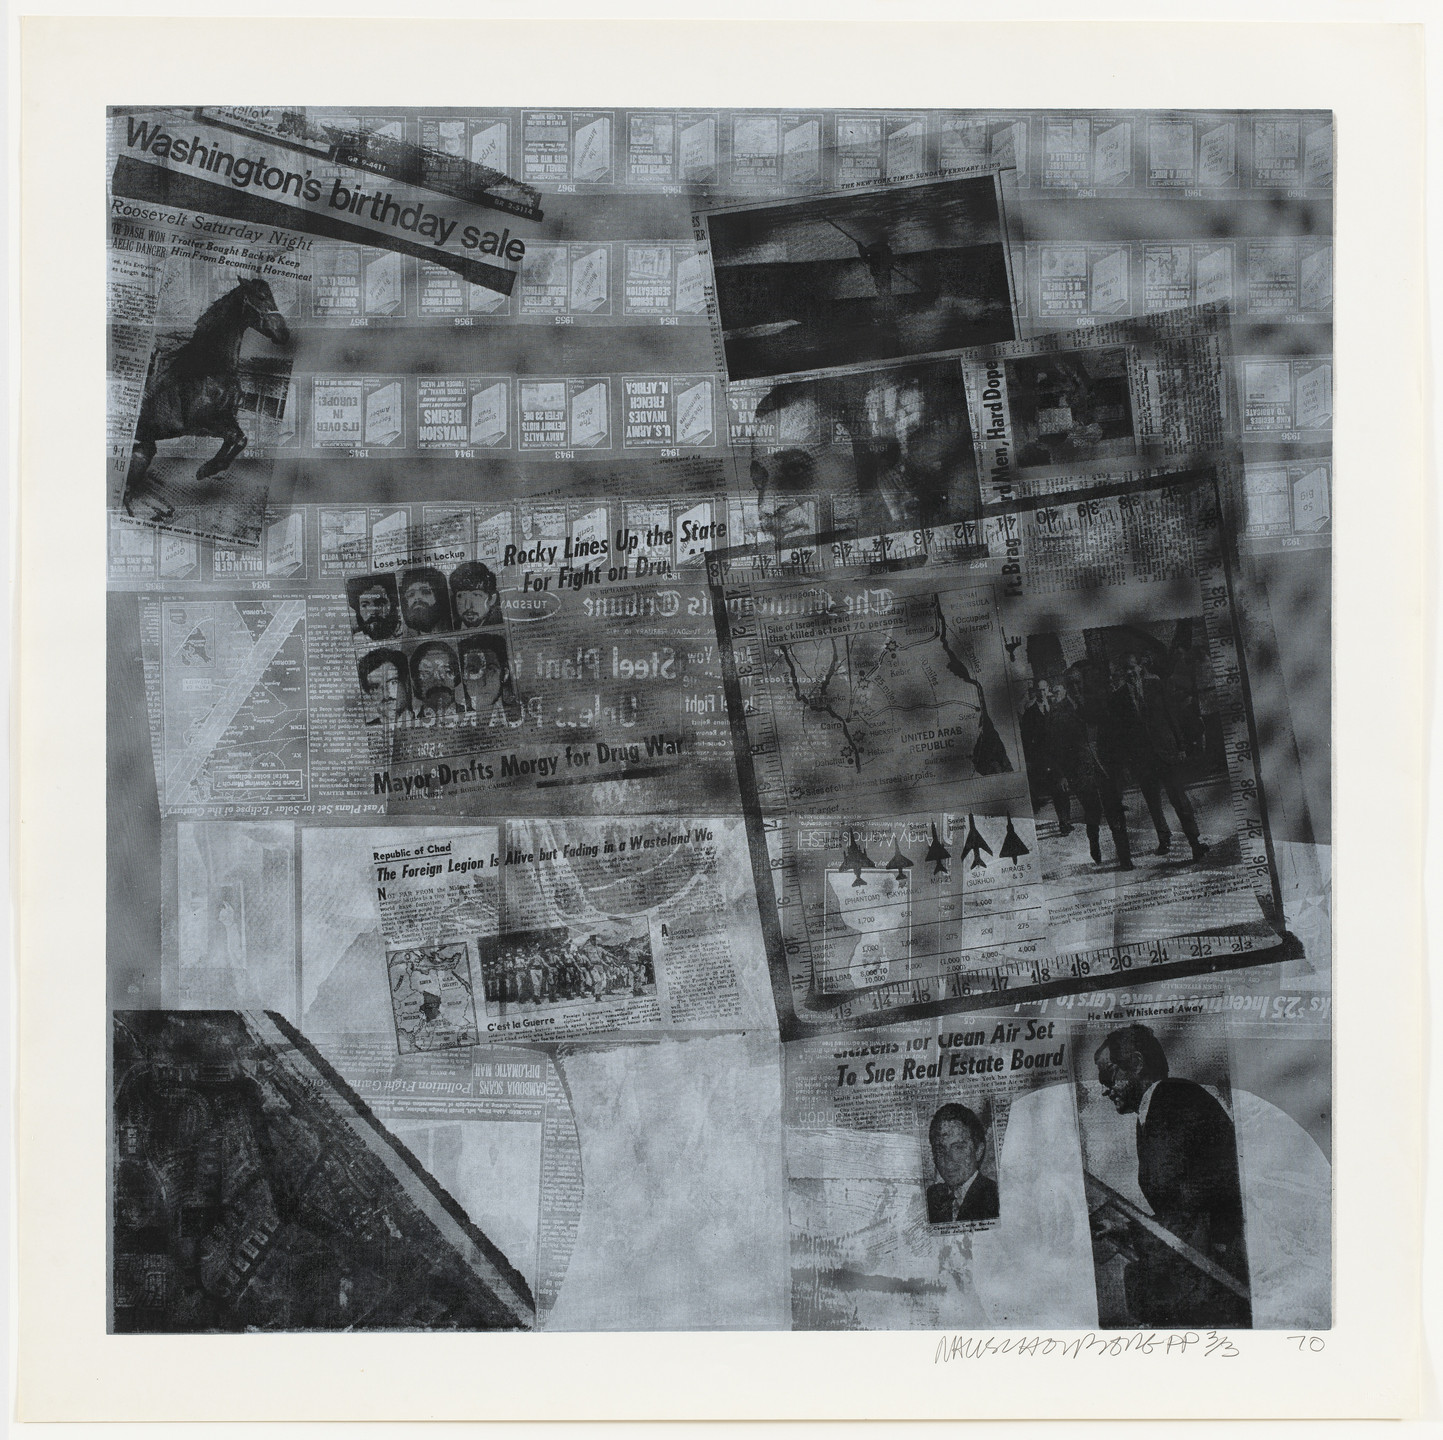 Robert Rauschenberg. Surface Series 47 from the portfolio Currents. 1970